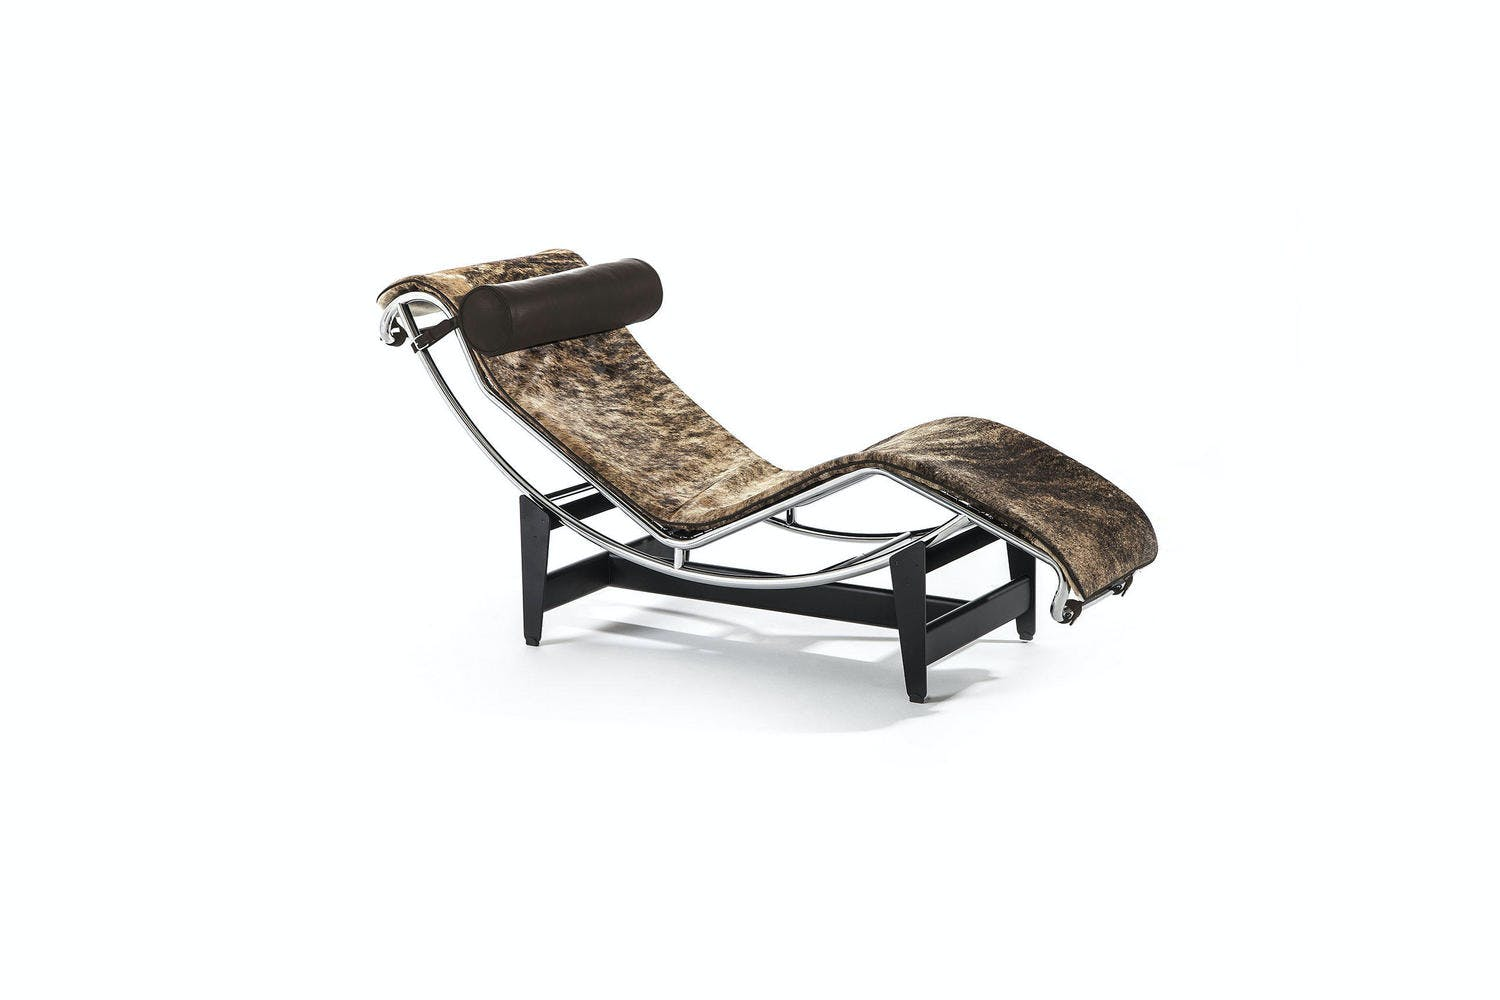 LC4 Pampas Chaise Longue By Le Corbusier Pierre Jeanneret Charlotte Perriand For Cassina